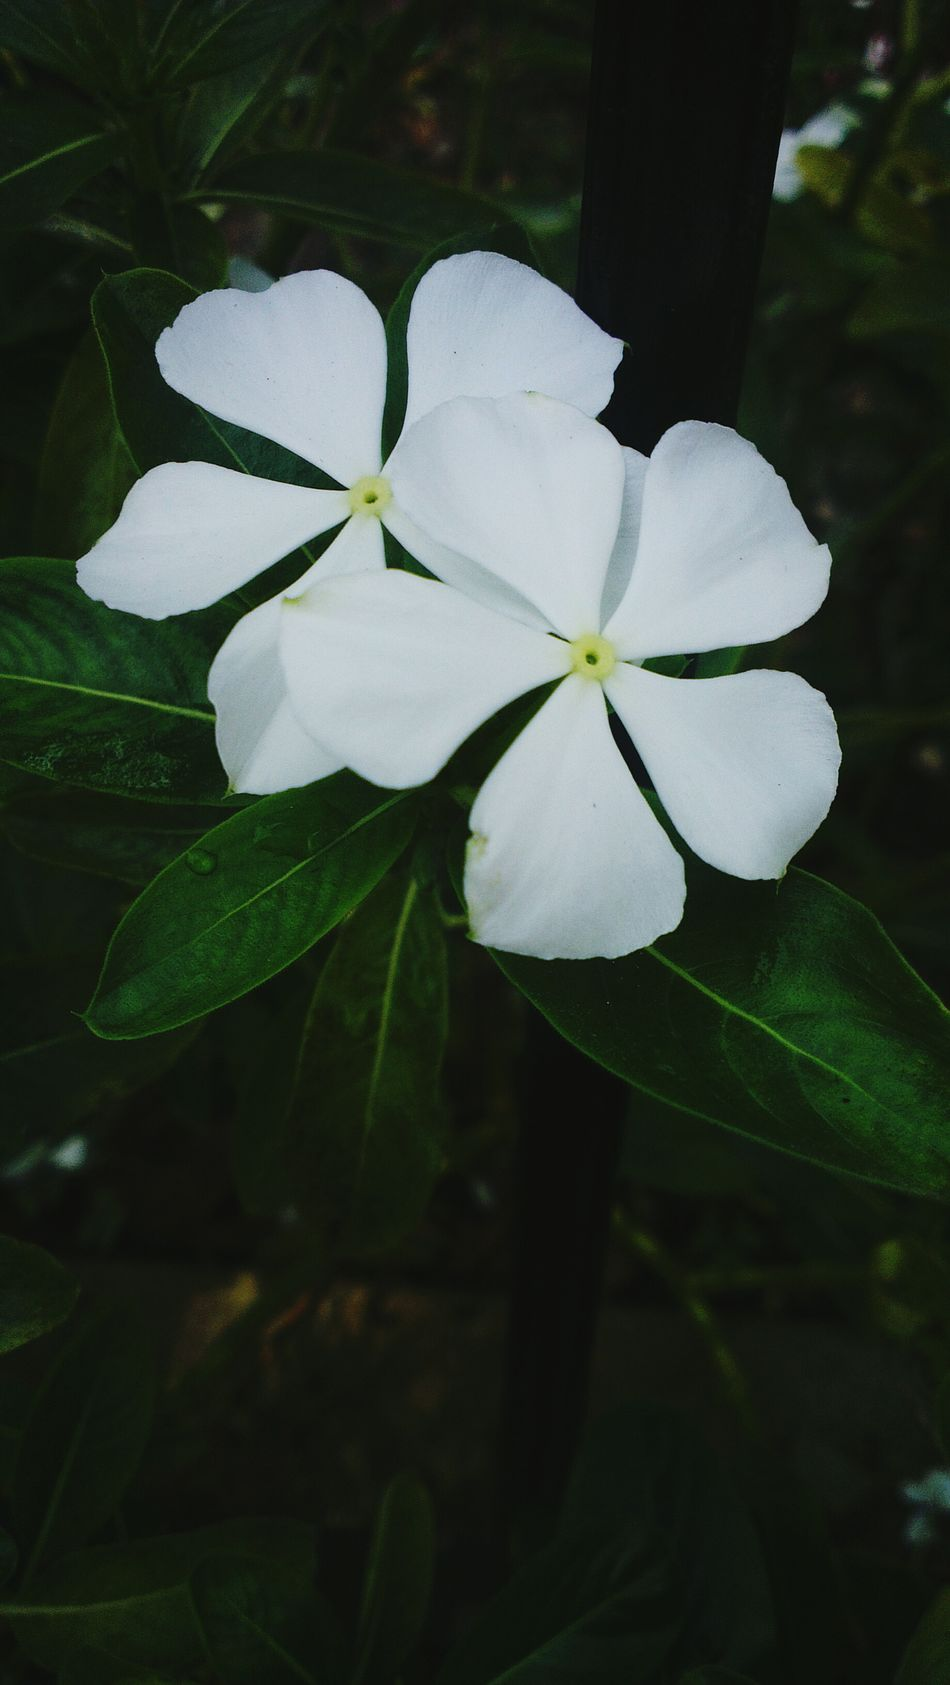 Nature Flower Plant Close-up Beauty In Nature Freshness Fragility Green Color Outdoors Growth Flower Head Leaf Petal Periwinkle No People Day